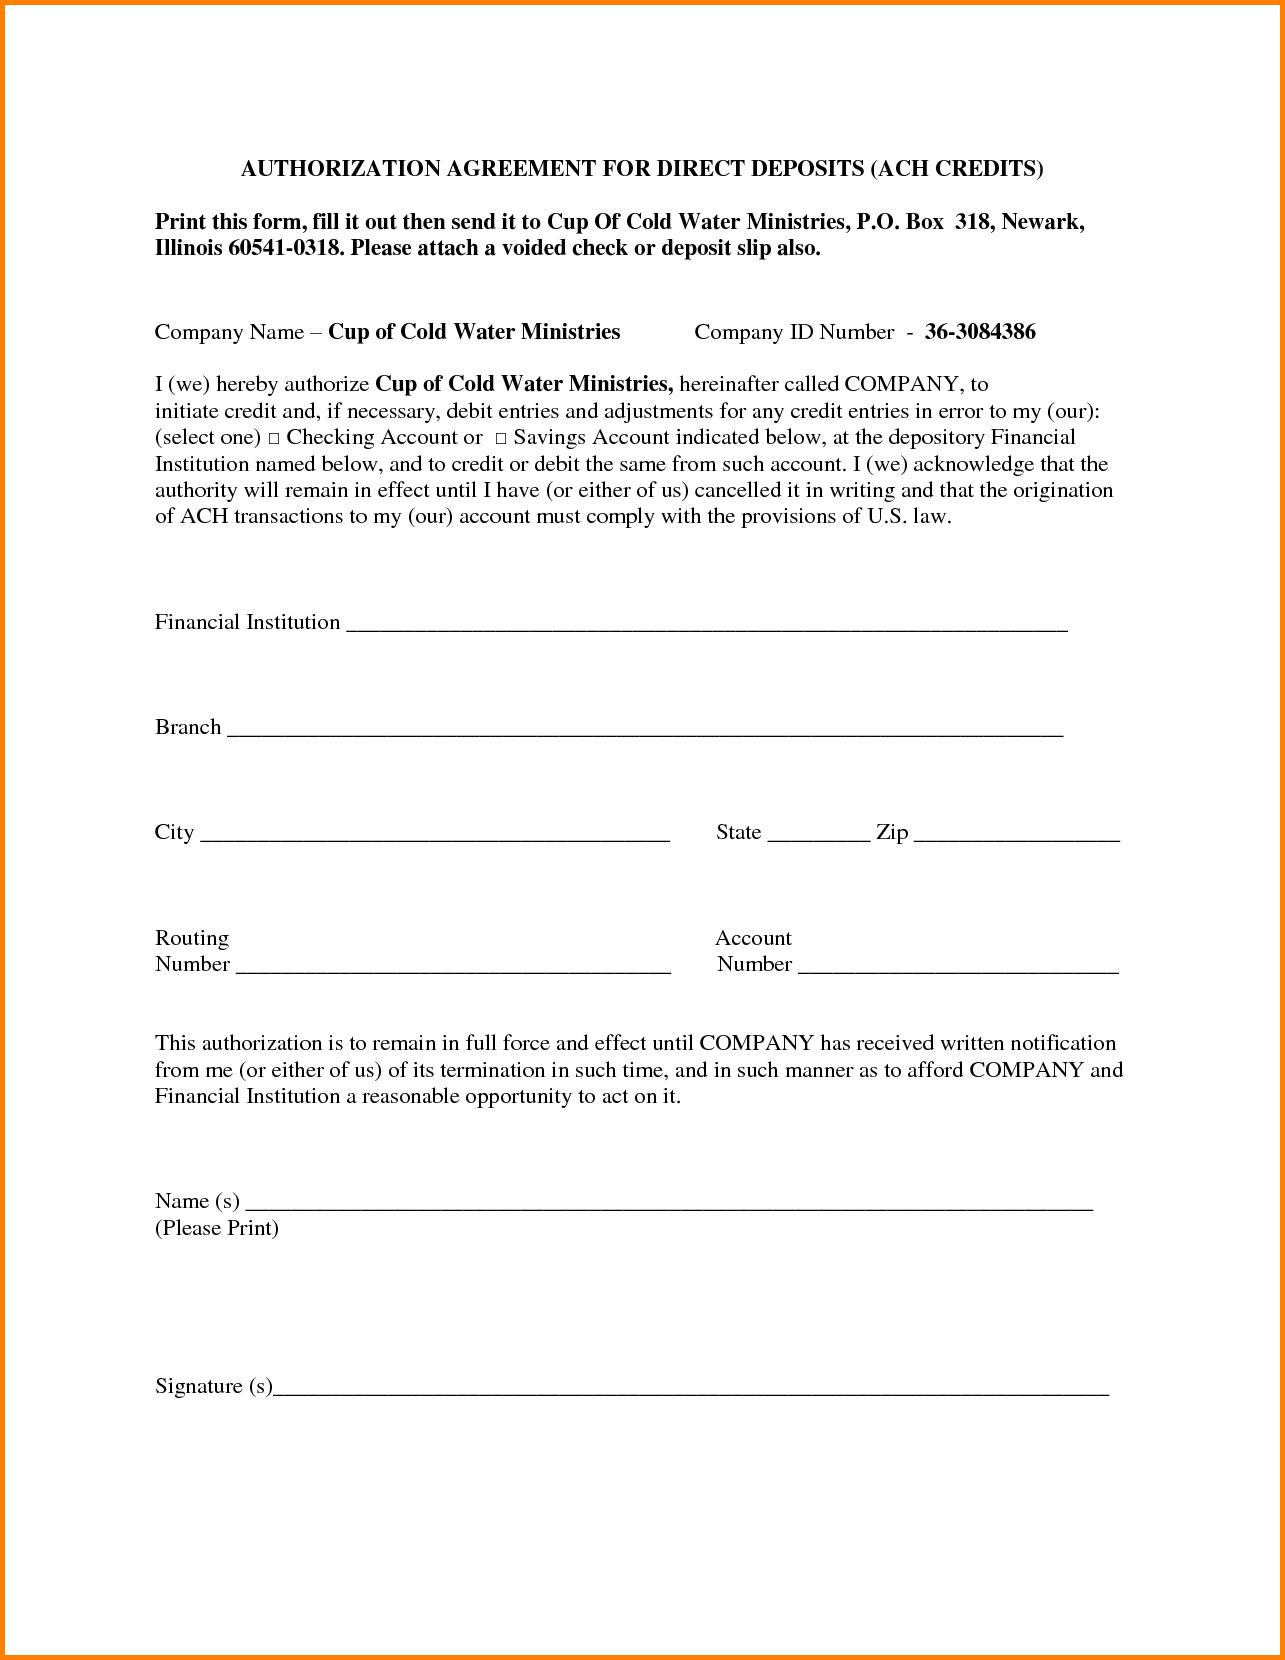 Ach Authorization Form Wells Fargo